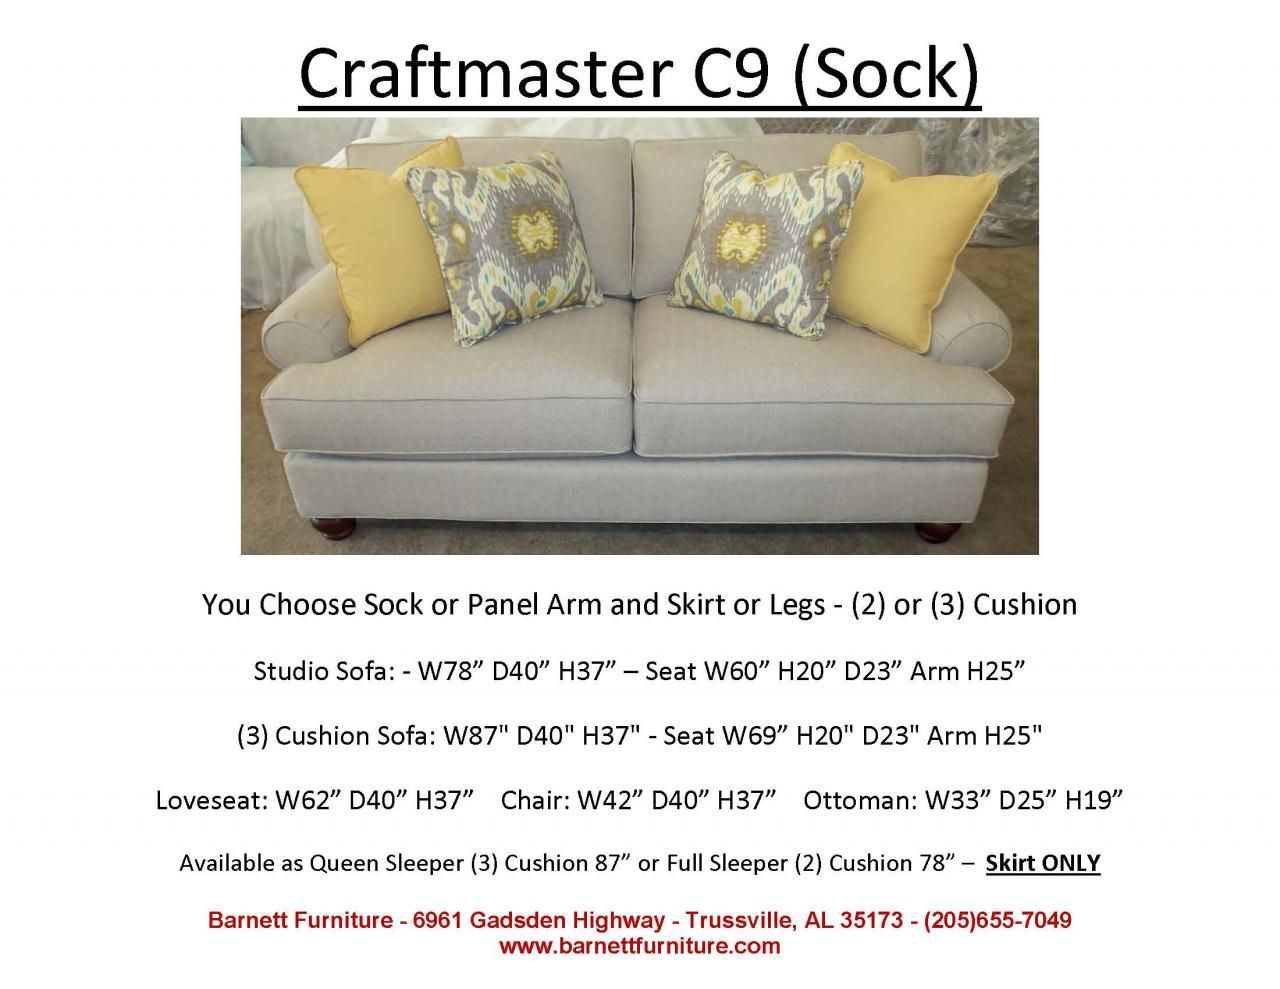 Craftmaster C9 Studio Size Sofa With Sock Arm And Turned Leg You Choose From 2 Arm Styles And Skir Apartment Furniture Cushions On Sofa Apartment Size Sofa